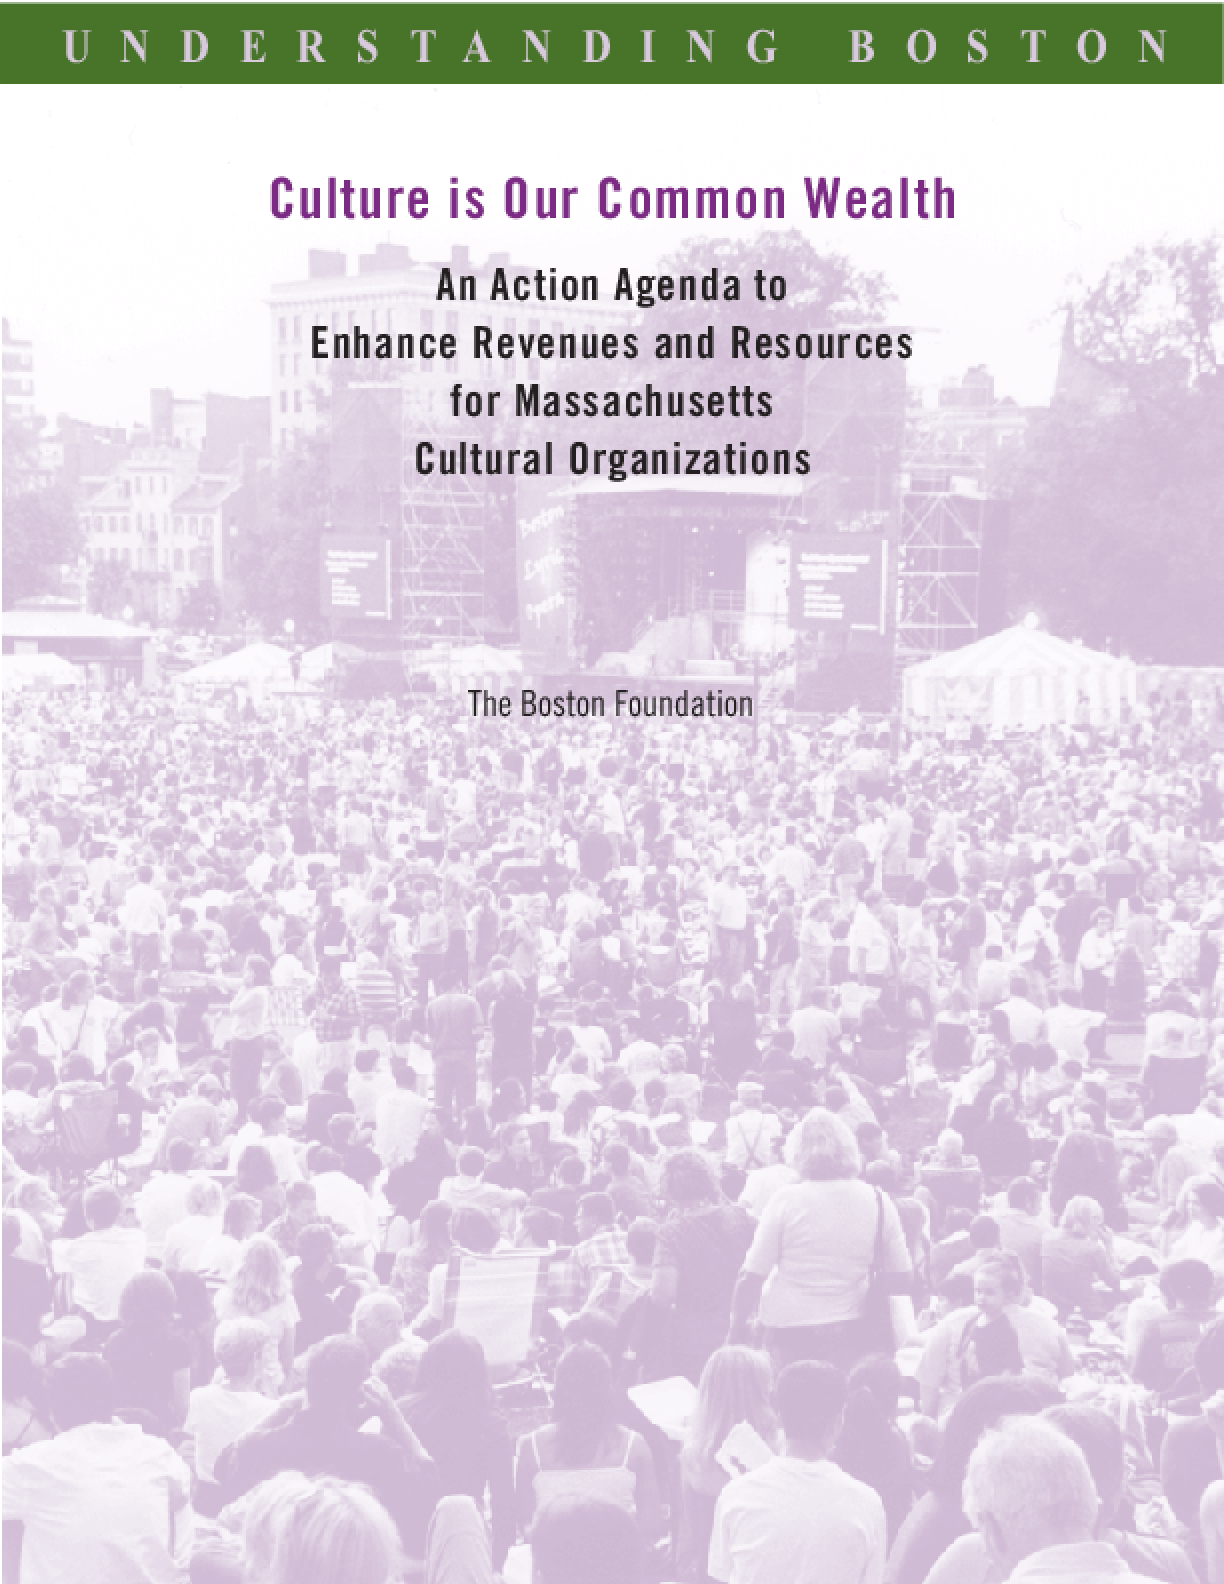 Culture Is Our Common Wealth: An Action Agenda to Enhance Revenues and Resources for Massachusetts Cultural Organizations